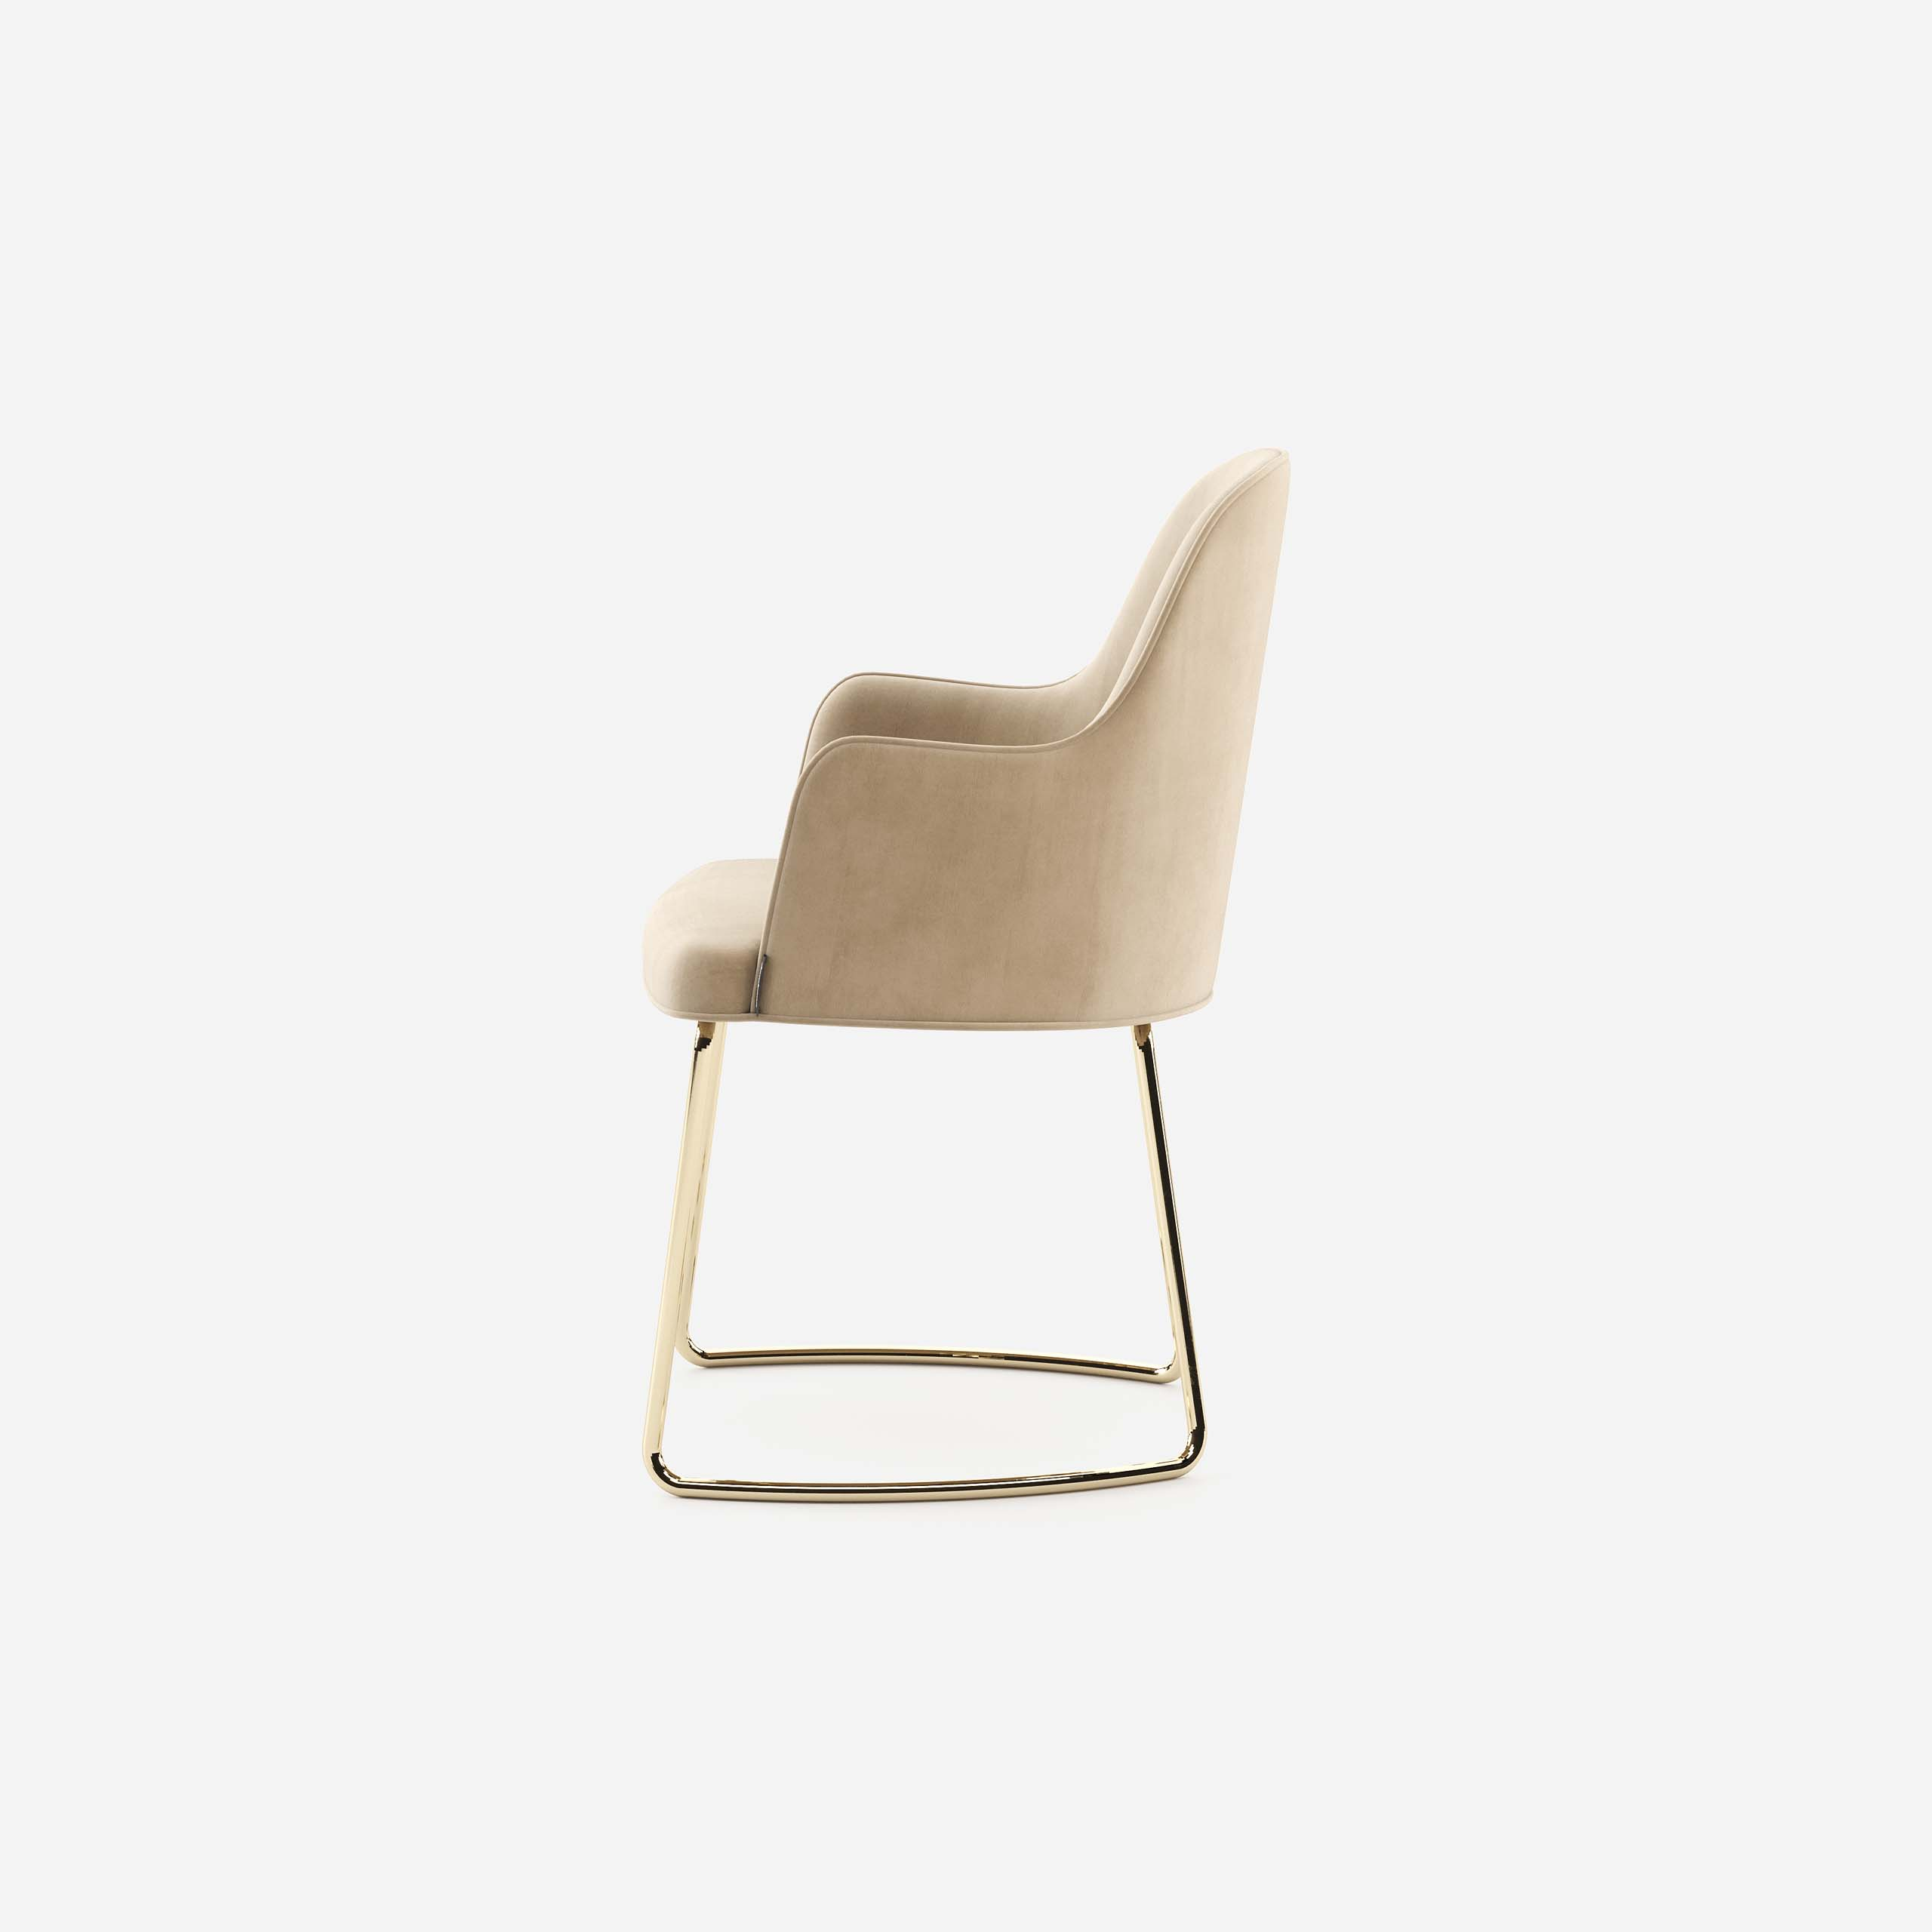 ruah-dining-chair-armrest-domkapa-new-collection- 2021-dining-room-decor